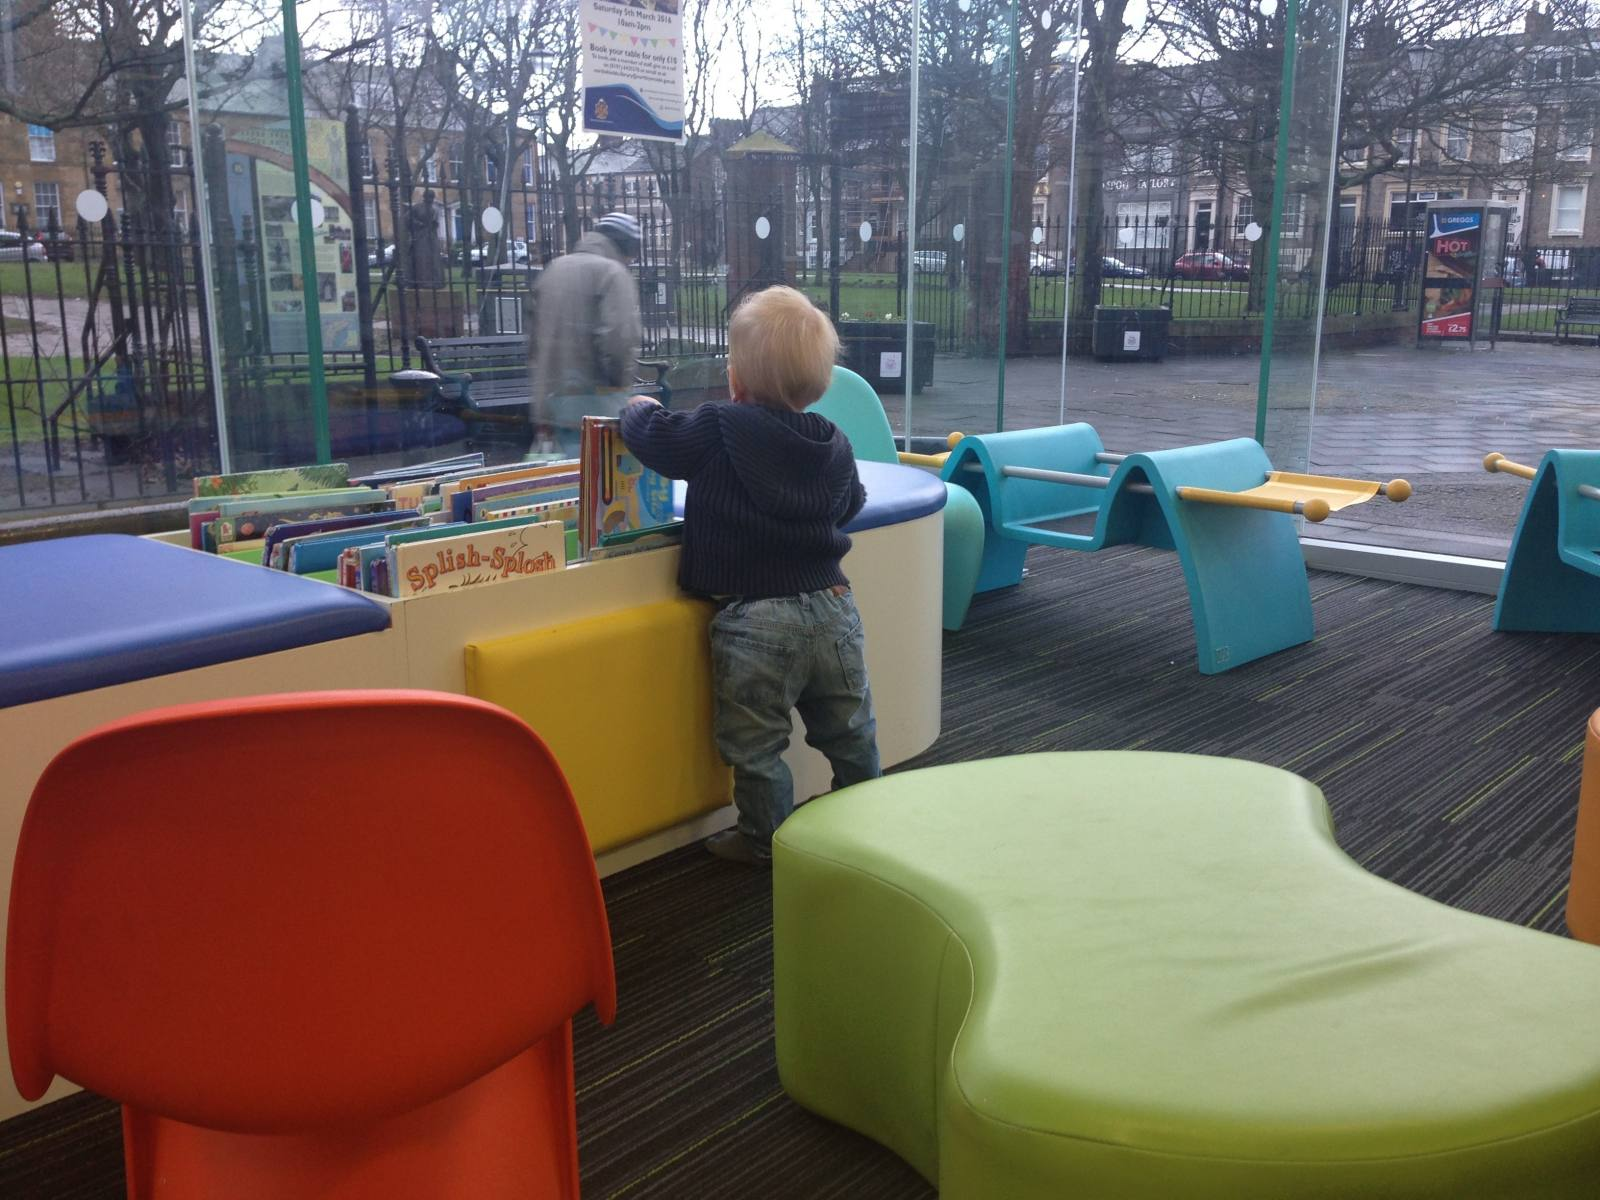 Libraries are great places to visit with your toddler. Not only are there lots of books but there are often free activities to take part in too